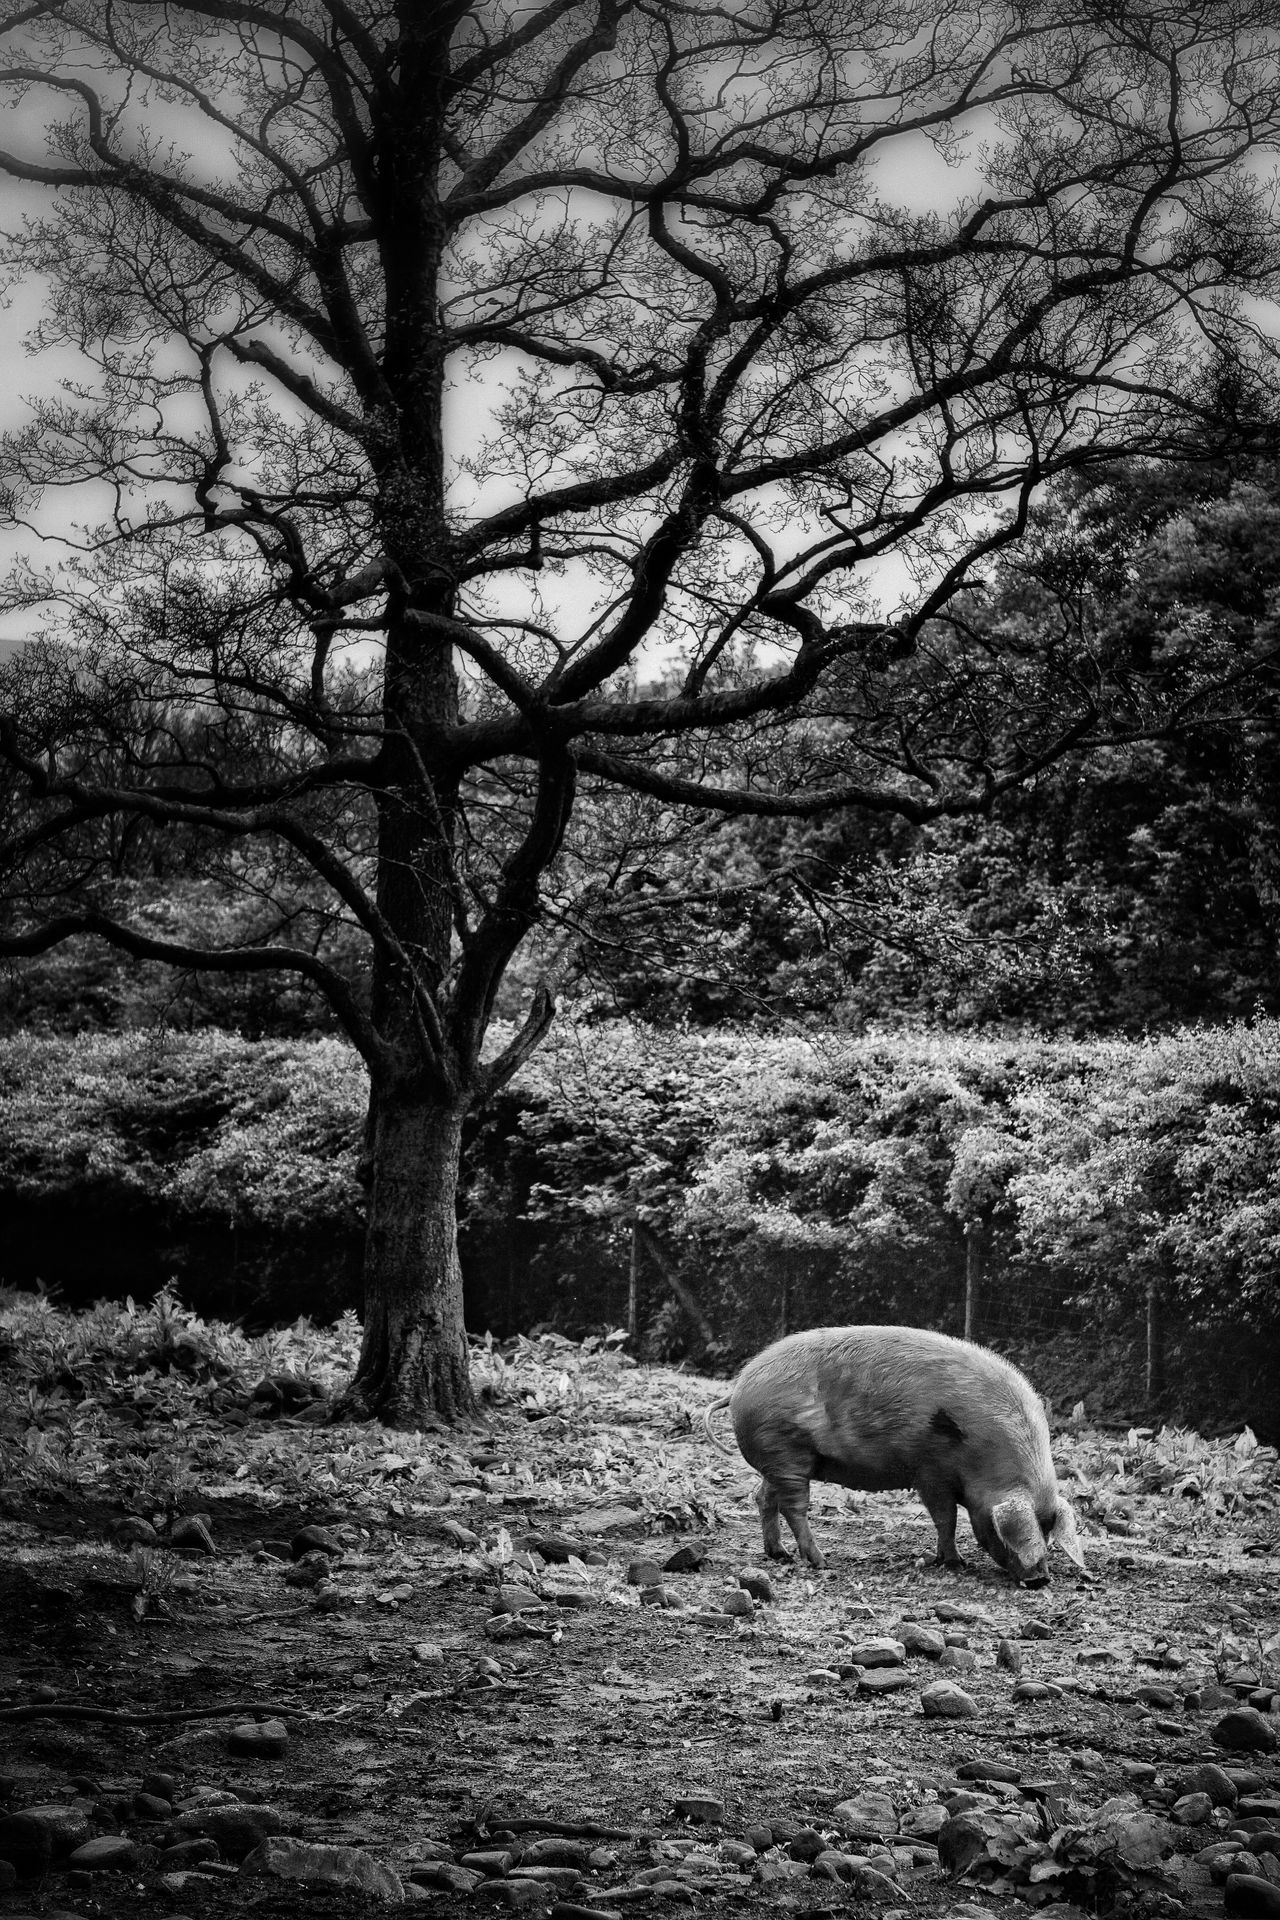 Pig Monochrome Black And White Photography Eye4photography  EyeEm Nature Lover Black & White Blackandwhite Photography Black And White Animal Animal Photography Animals Farm Animals Oink